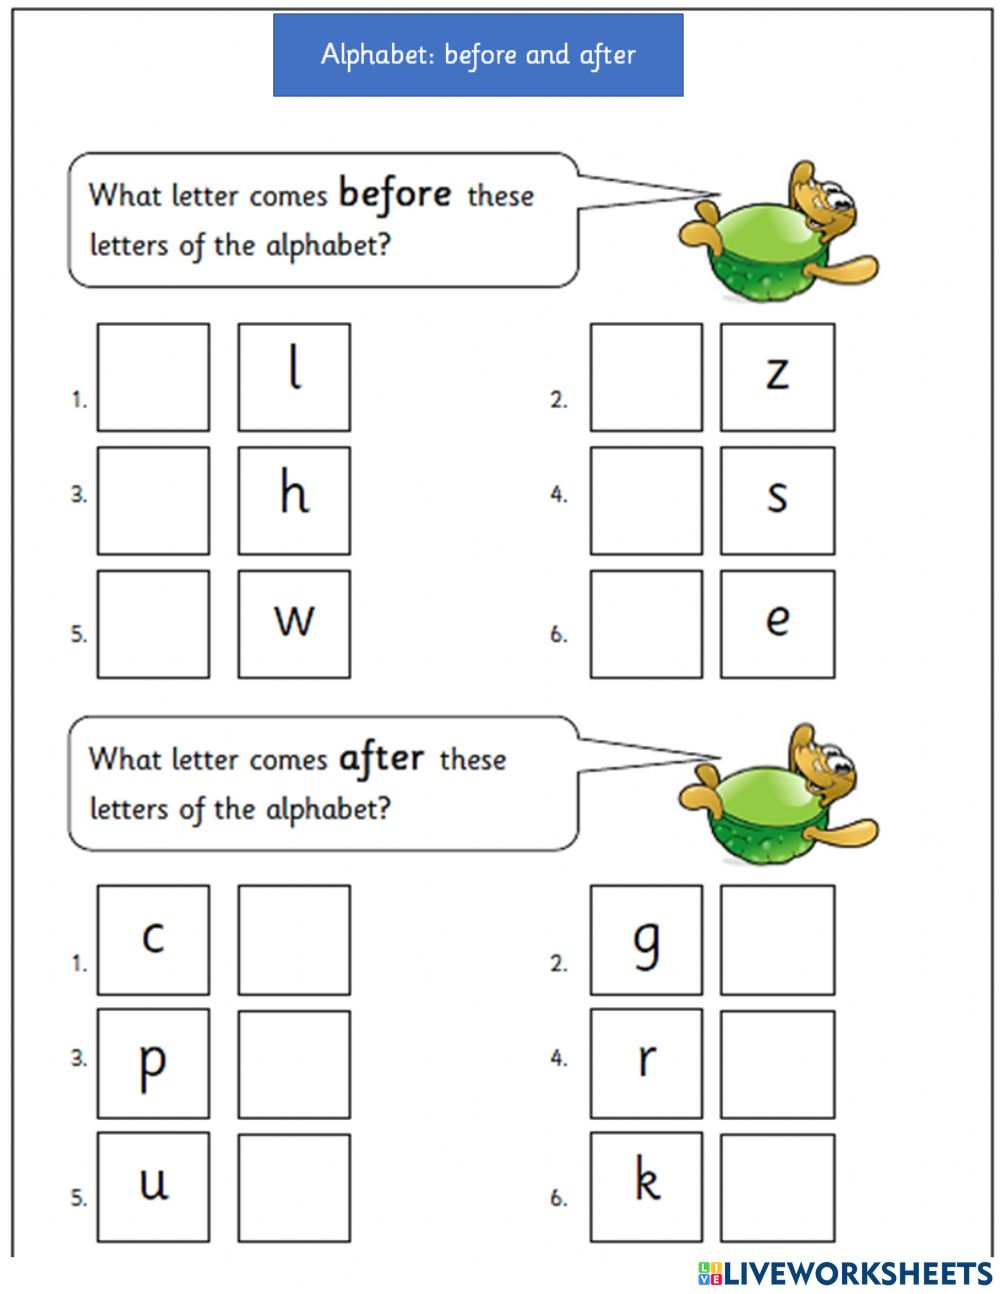 hight resolution of Abc before and after 3 worksheet